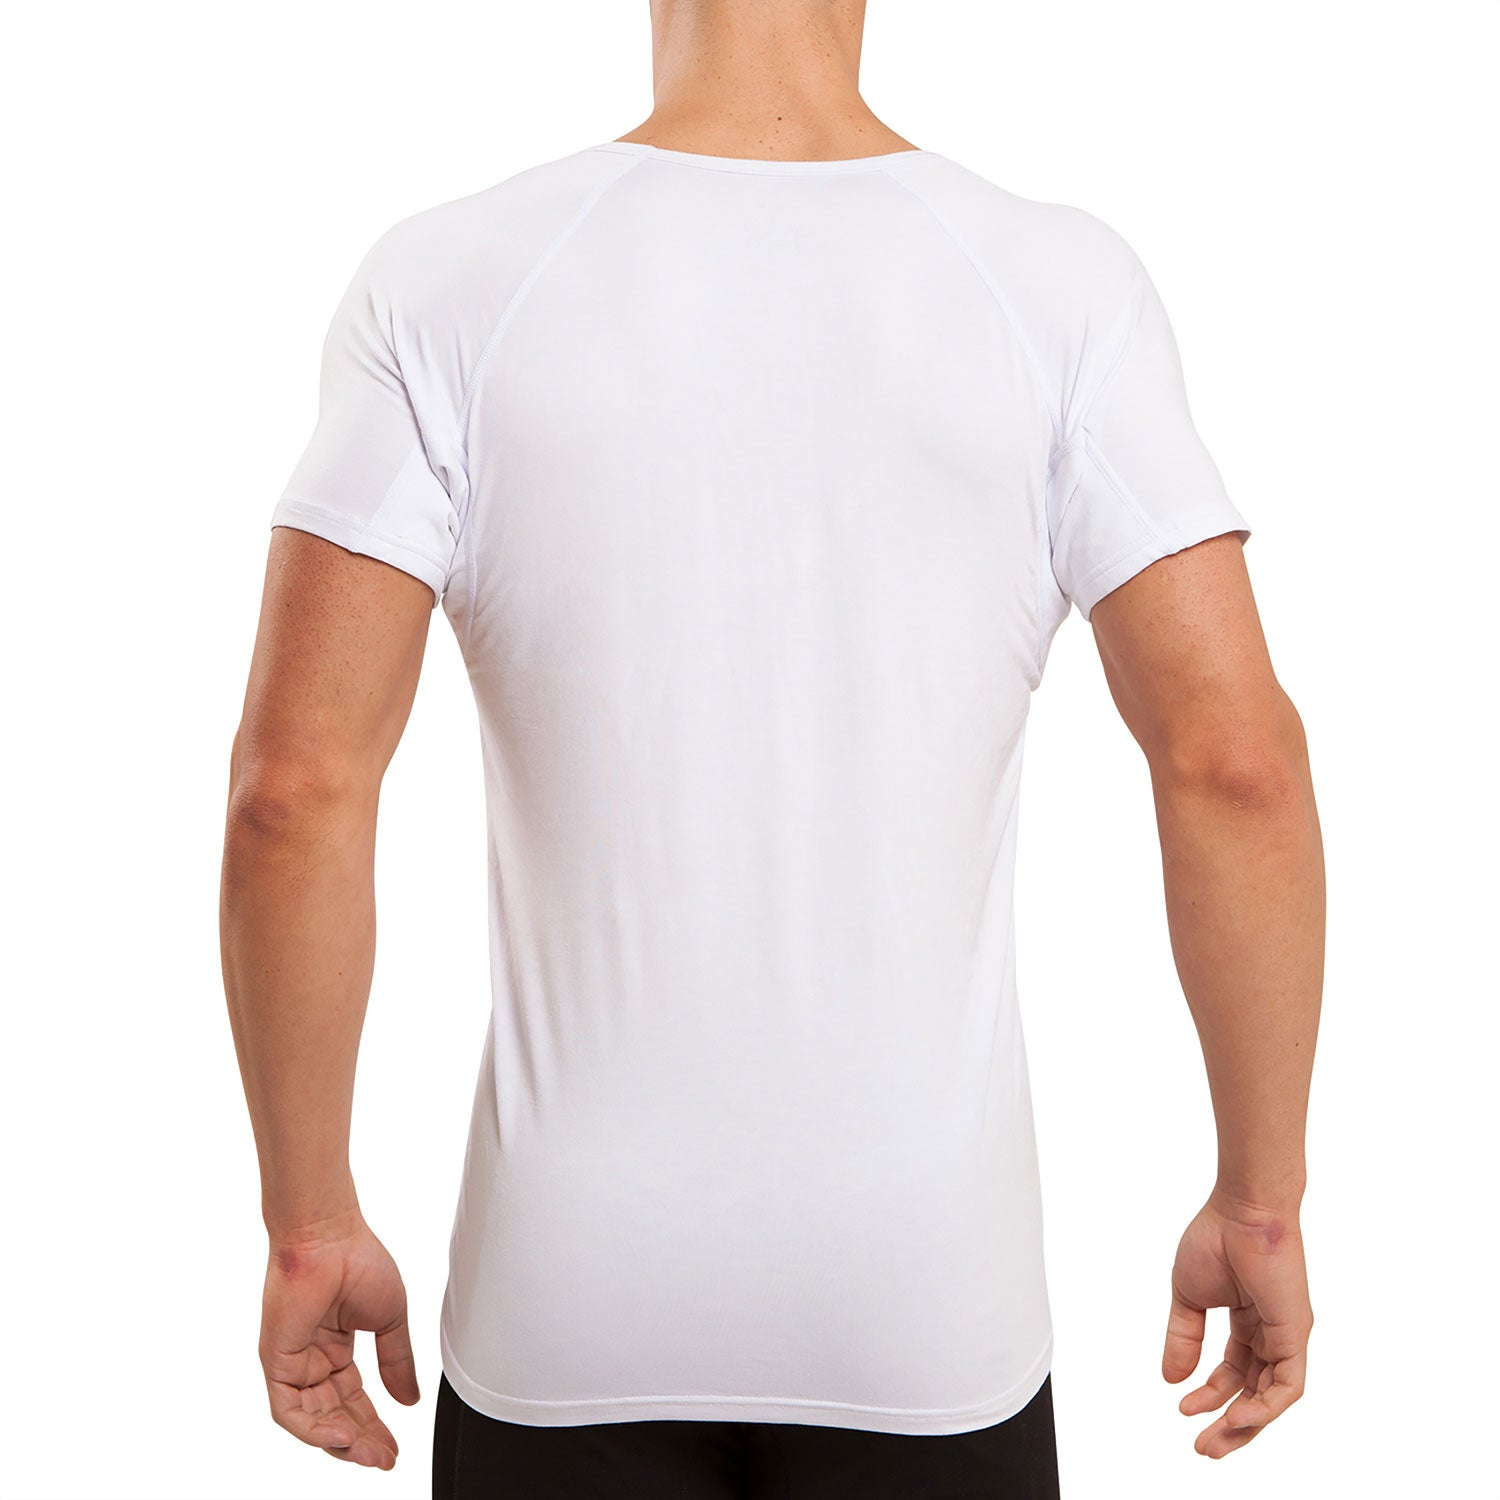 Back & Underarm Sweat Proof V-Neck Micro Modal Undershirt - Ejis, inc.